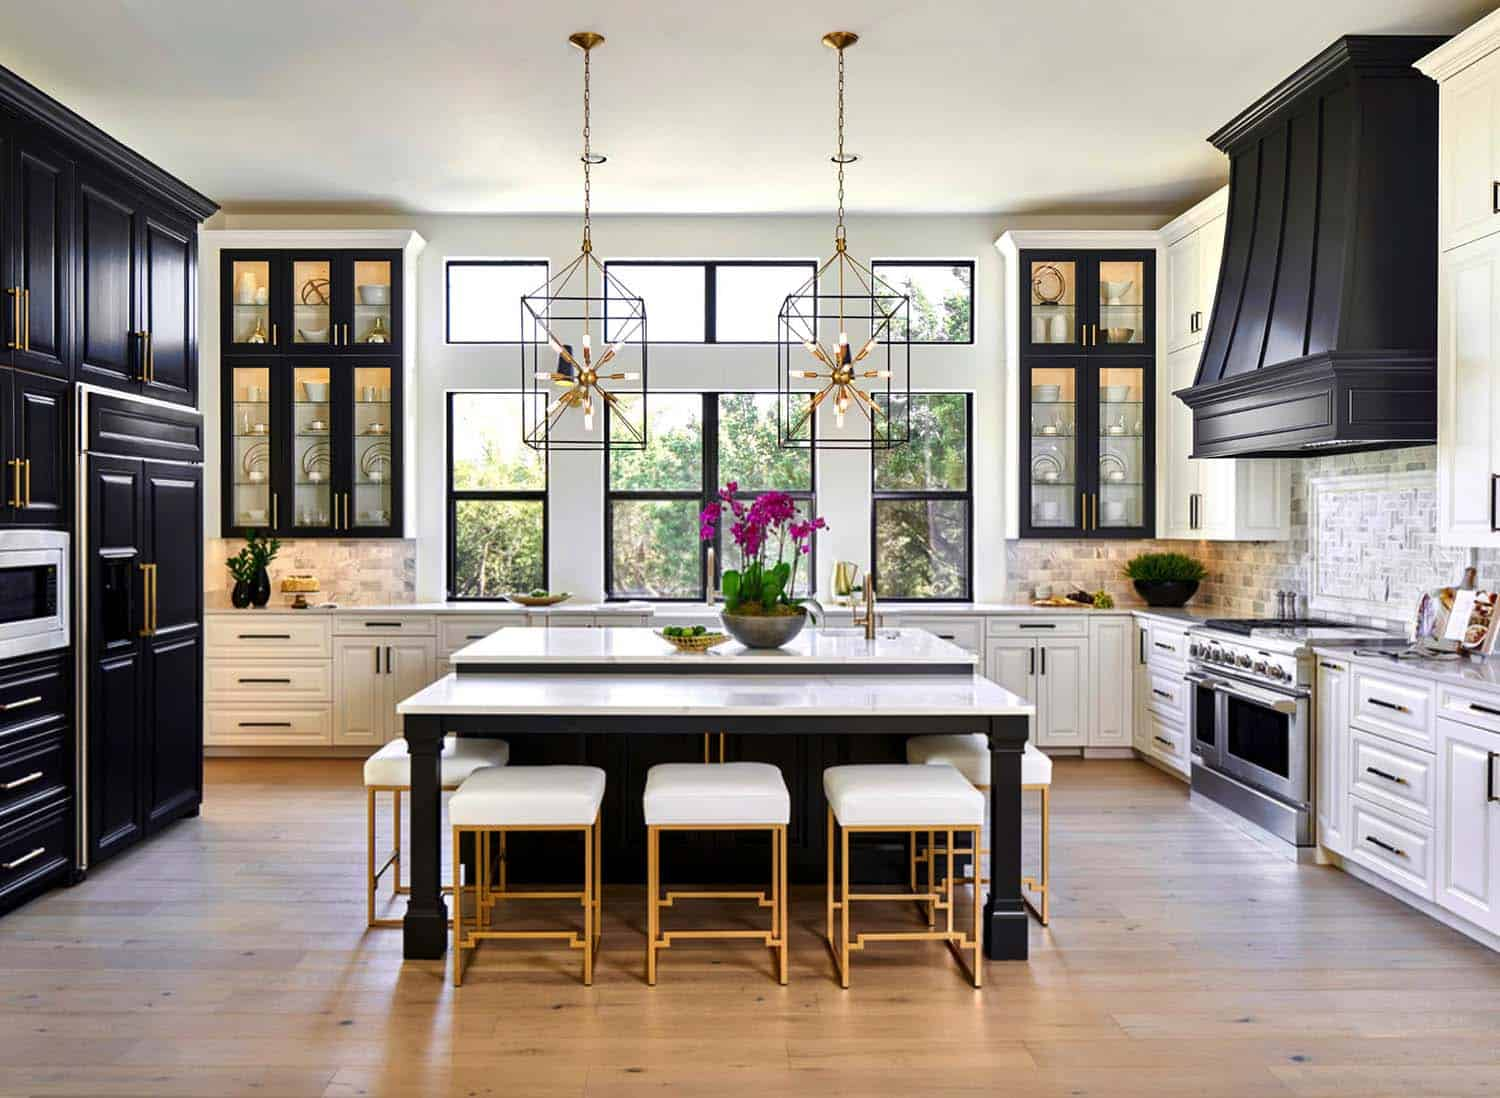 25 absolutely gorgeous transitional style kitchen ideas - Kitchen transitional design ideas ...